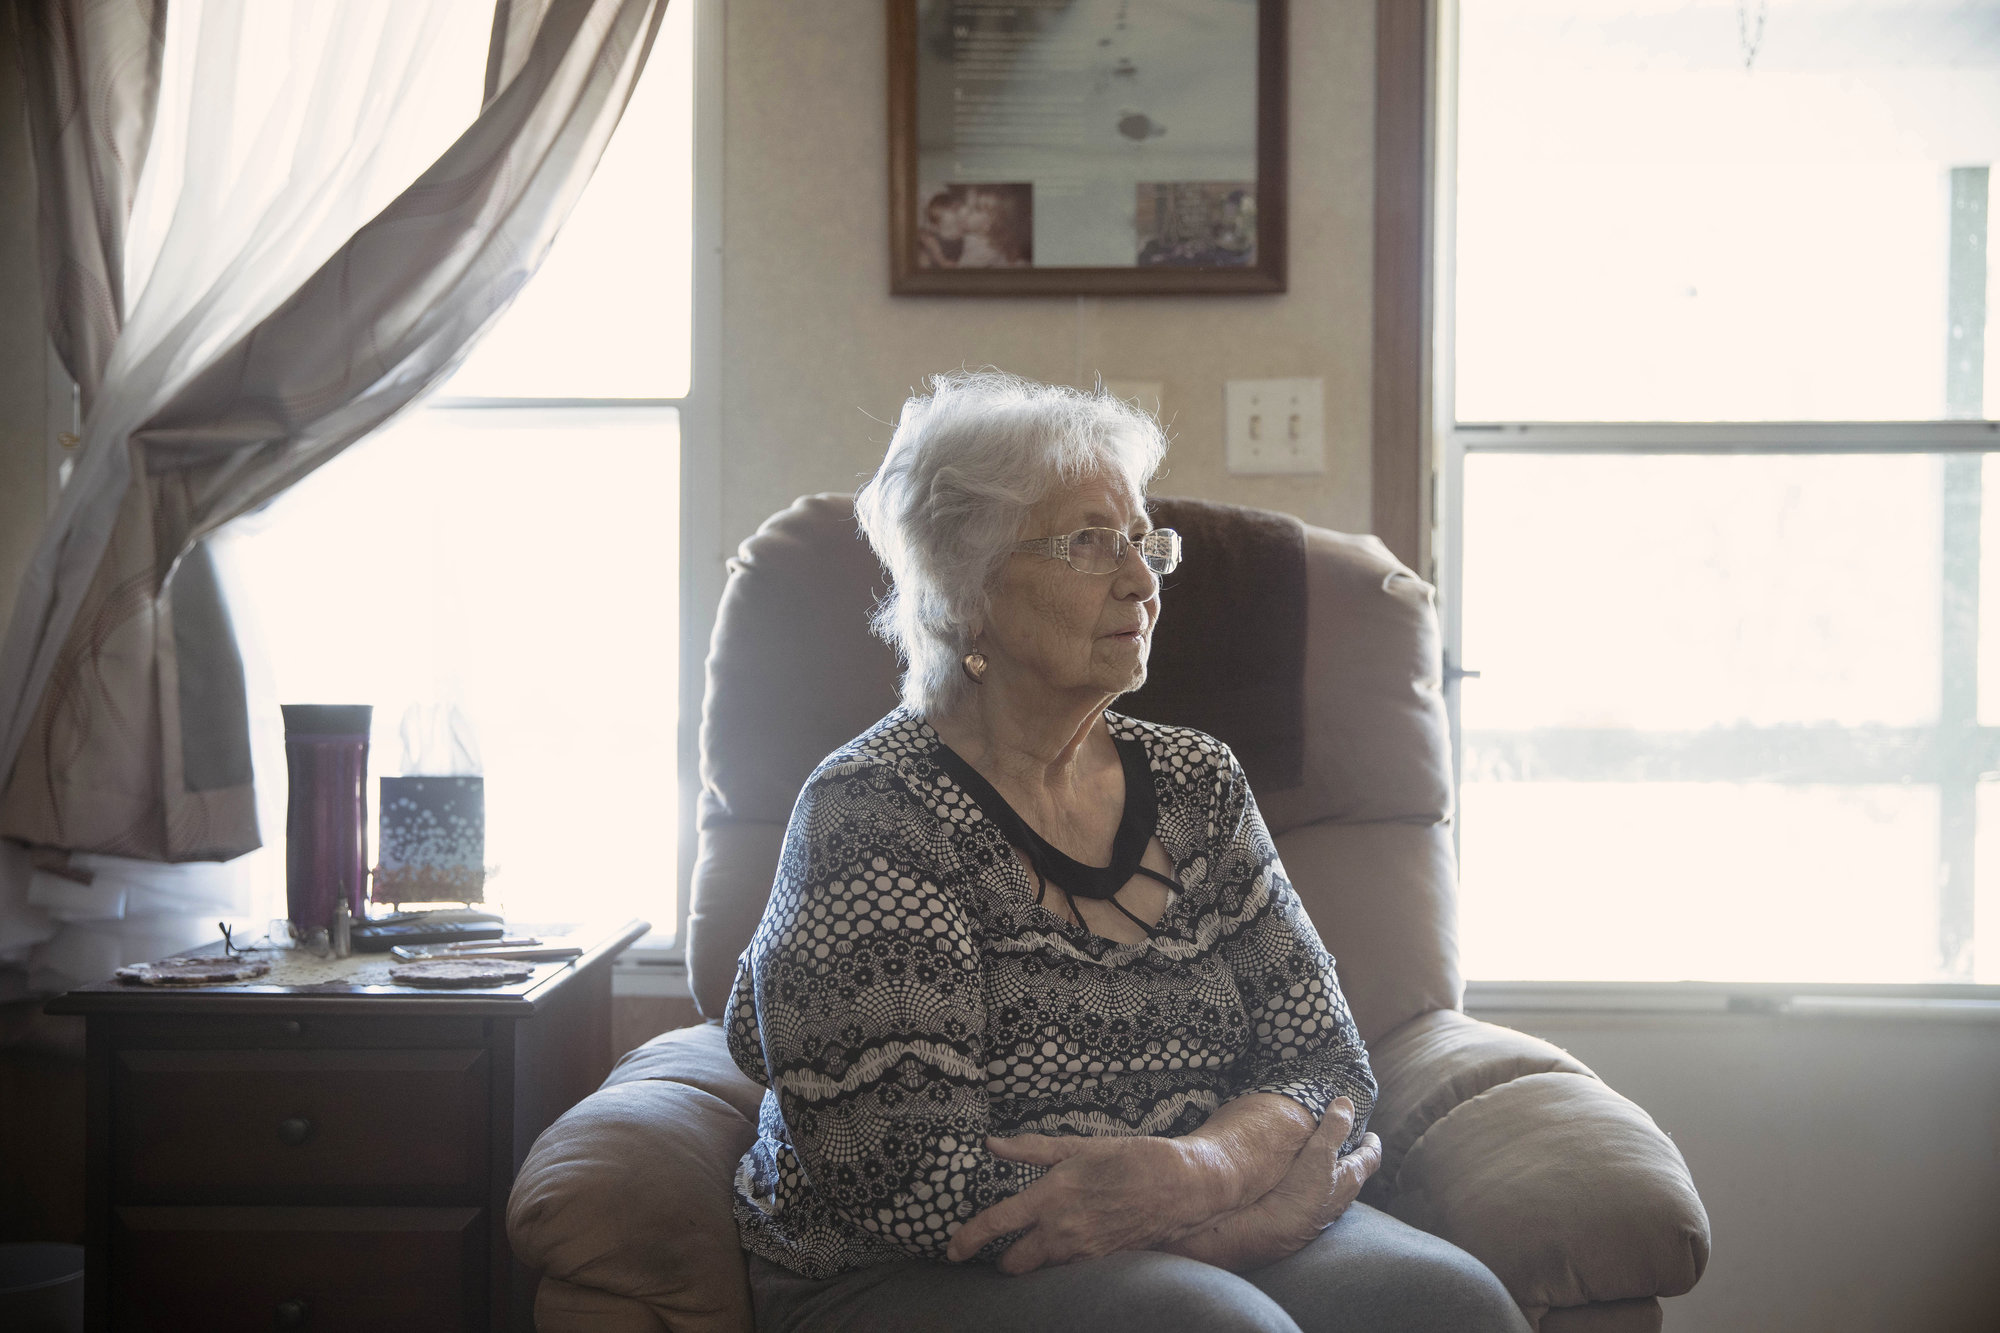 Earlene Peterson, whose daughter and granddaughter were killed, in her home in Hector, Ark., in 2019.